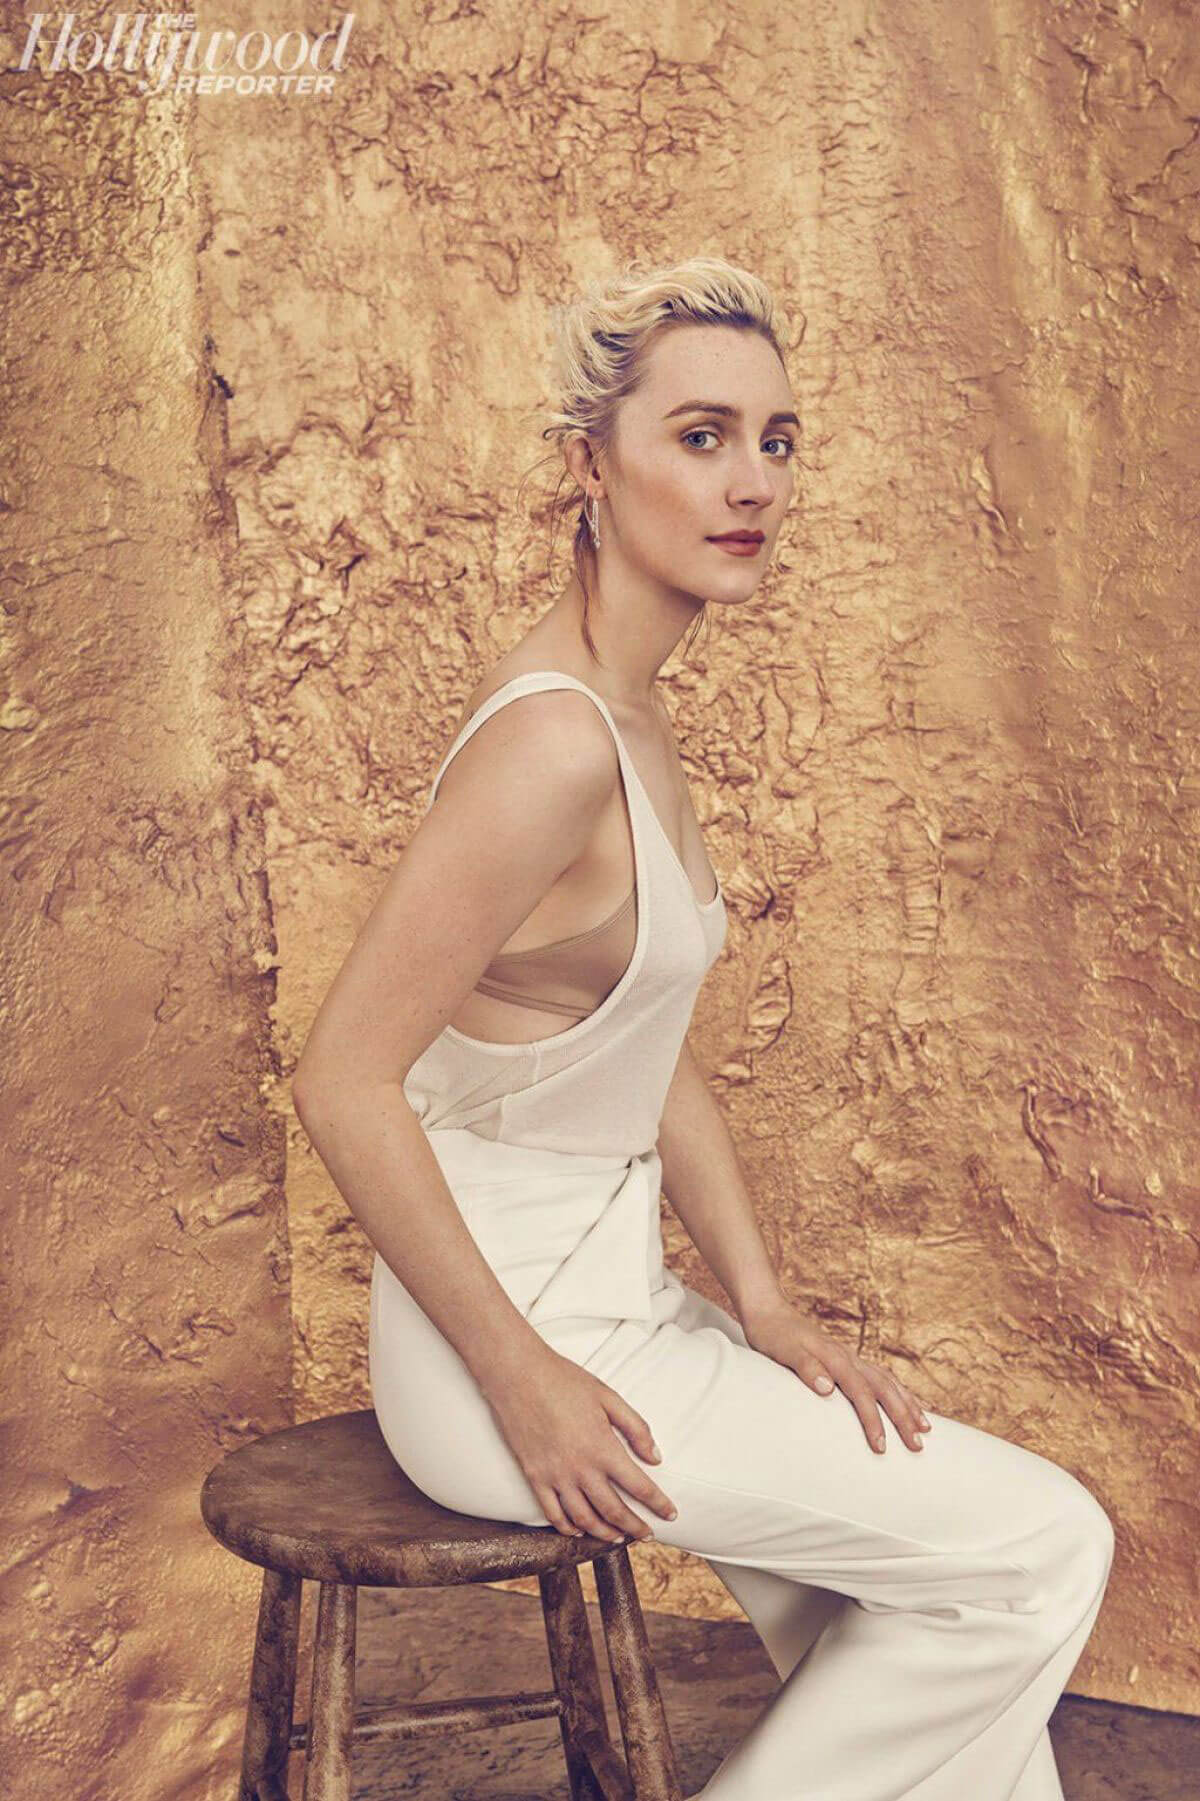 Saoirse Ronan Stills in The Hollywood Reporter Roundtable, November Issue 2017